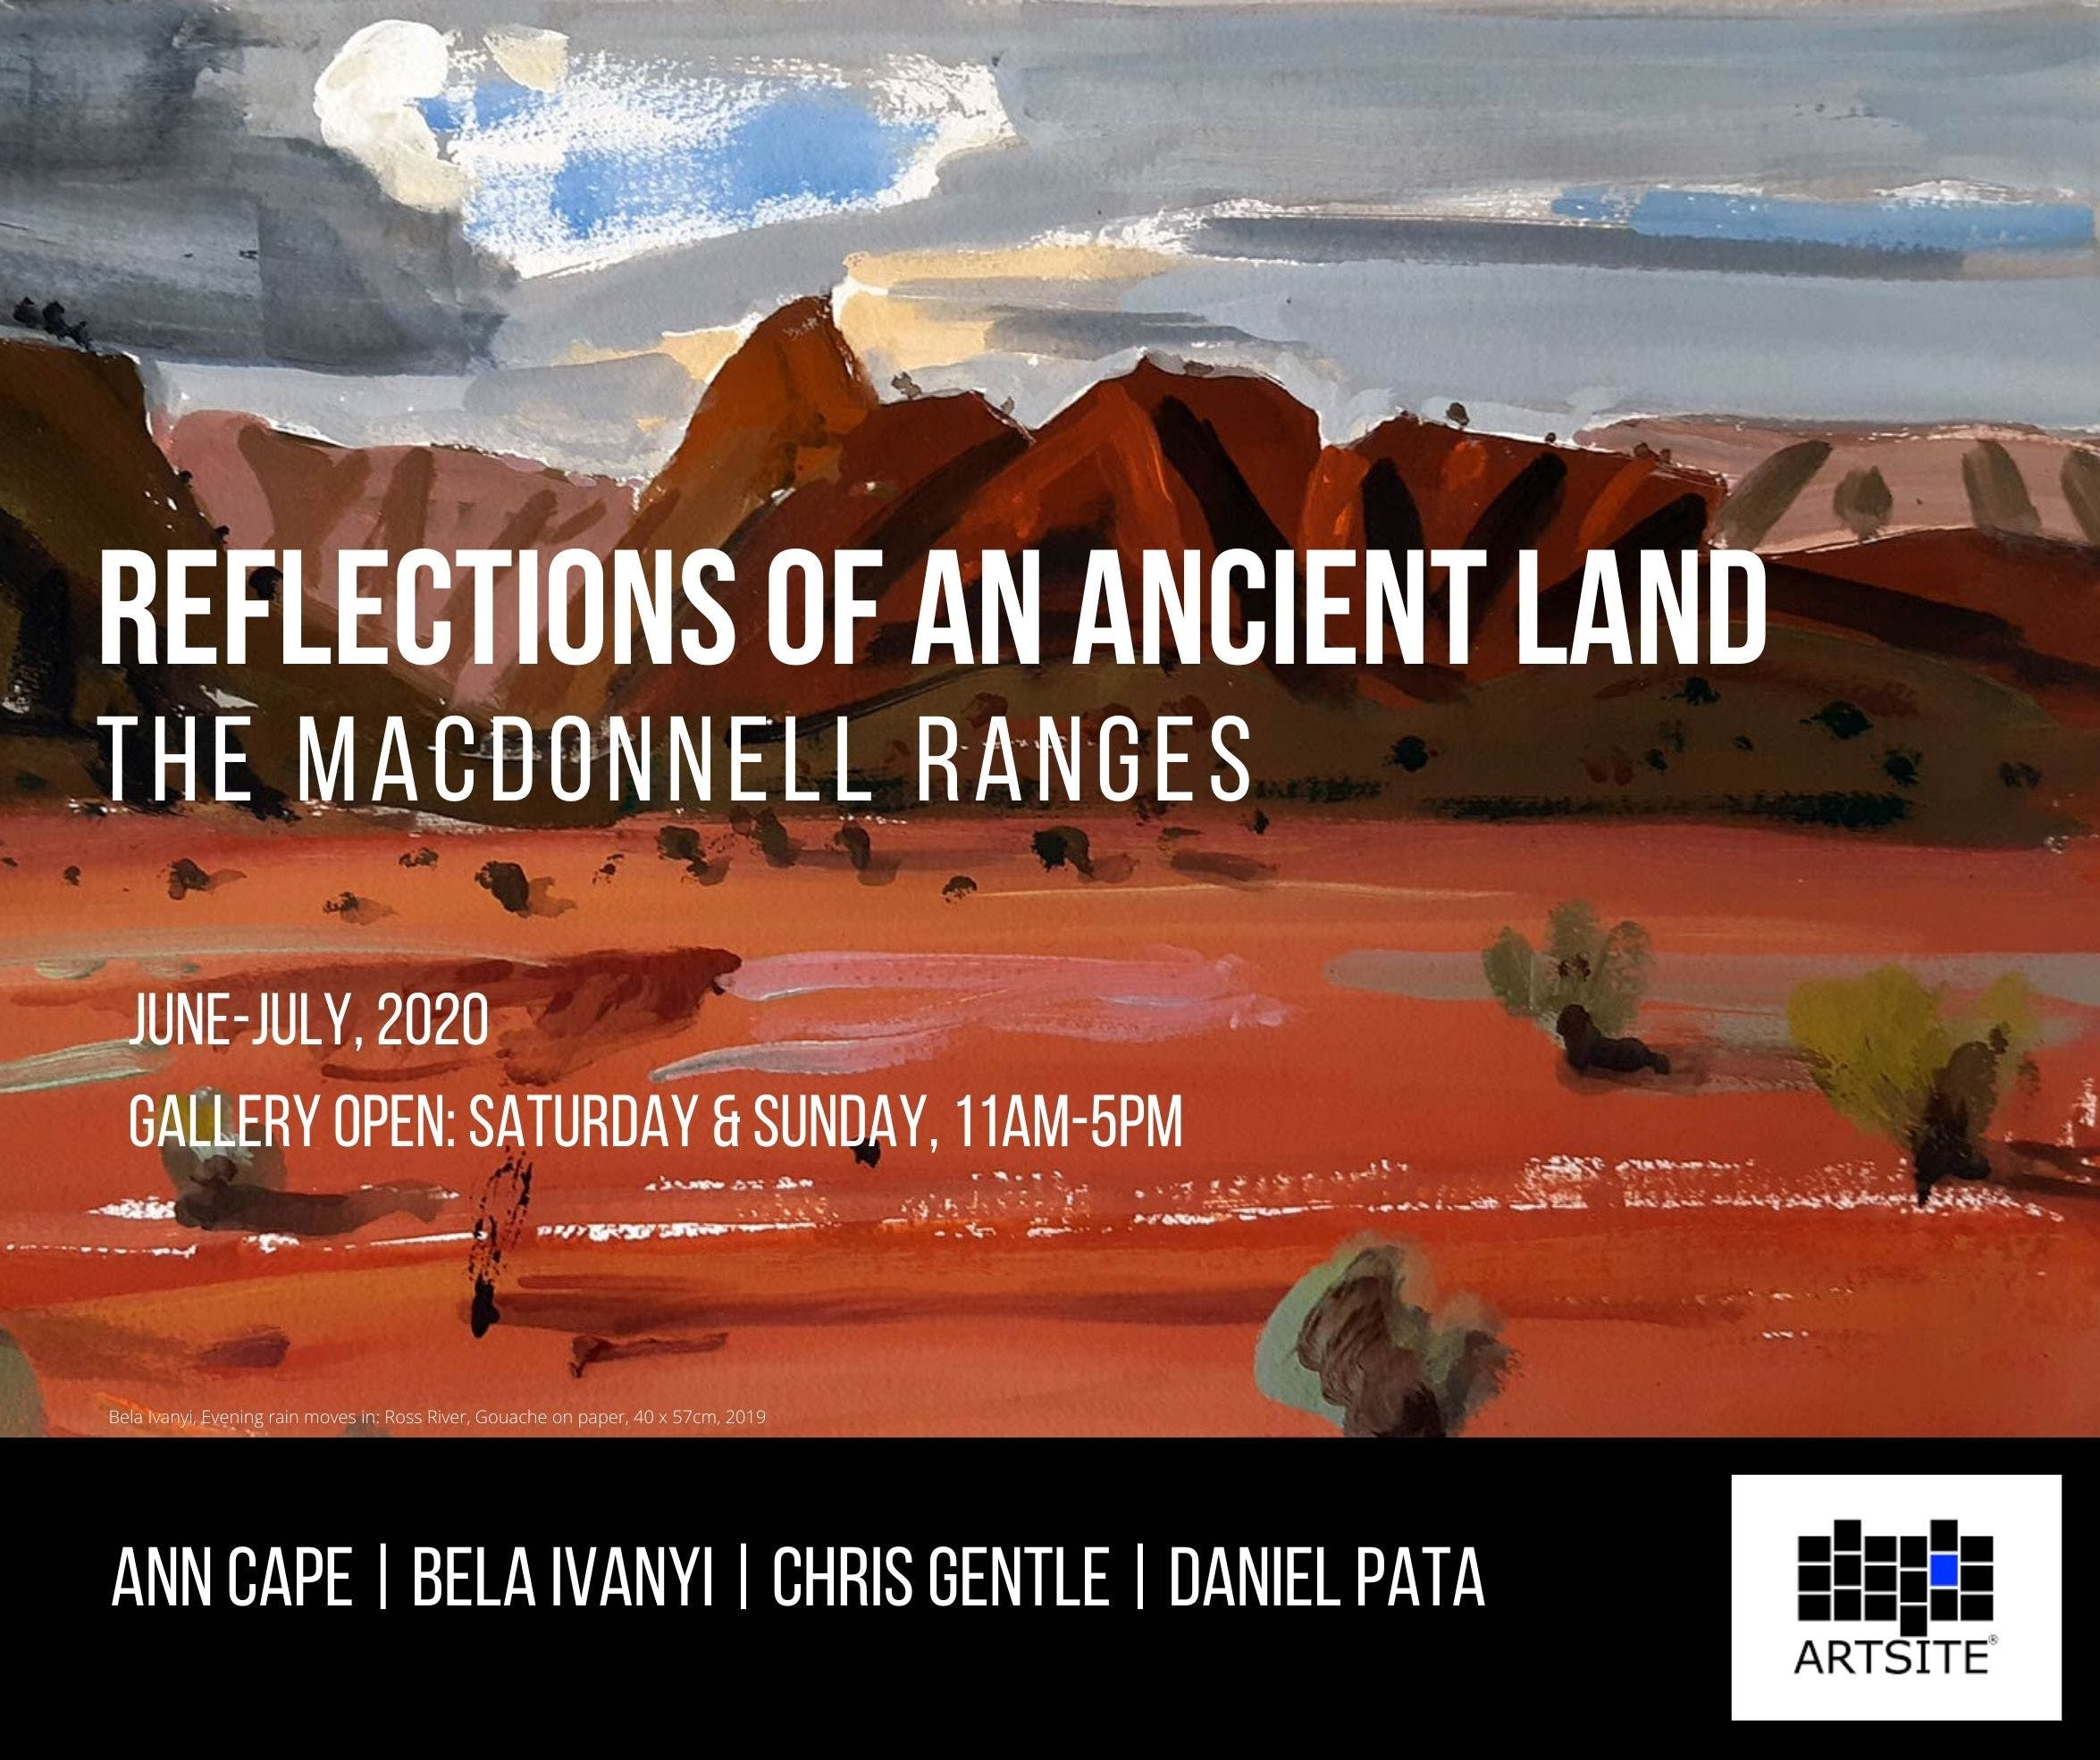 Reflections of An Ancient Land The MacDonnell Ranges - Tourism Adelaide